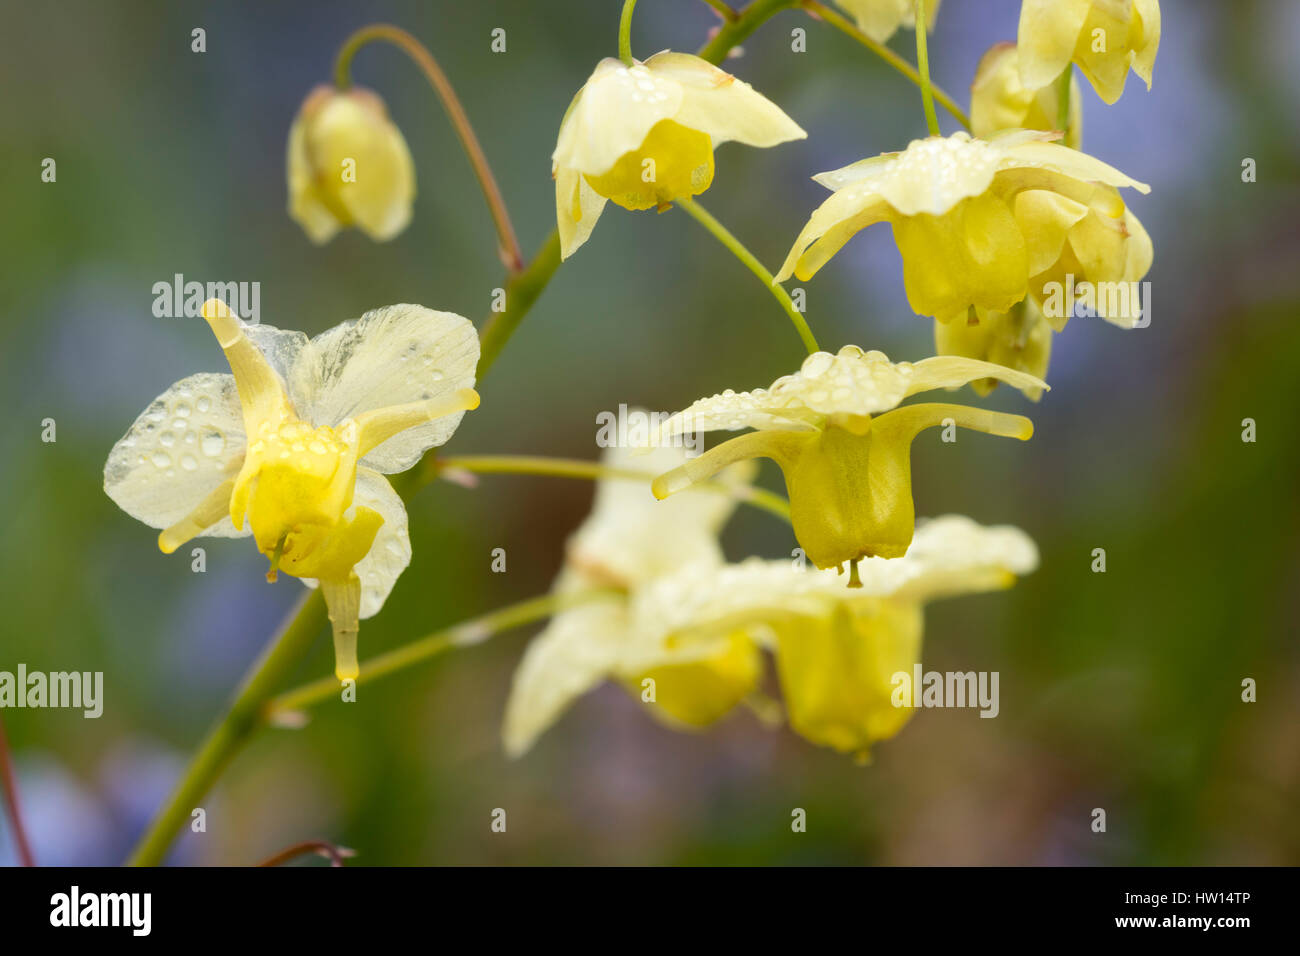 Early Spring Flowers Of The Yellow Bloomed Perennial Epimedium X